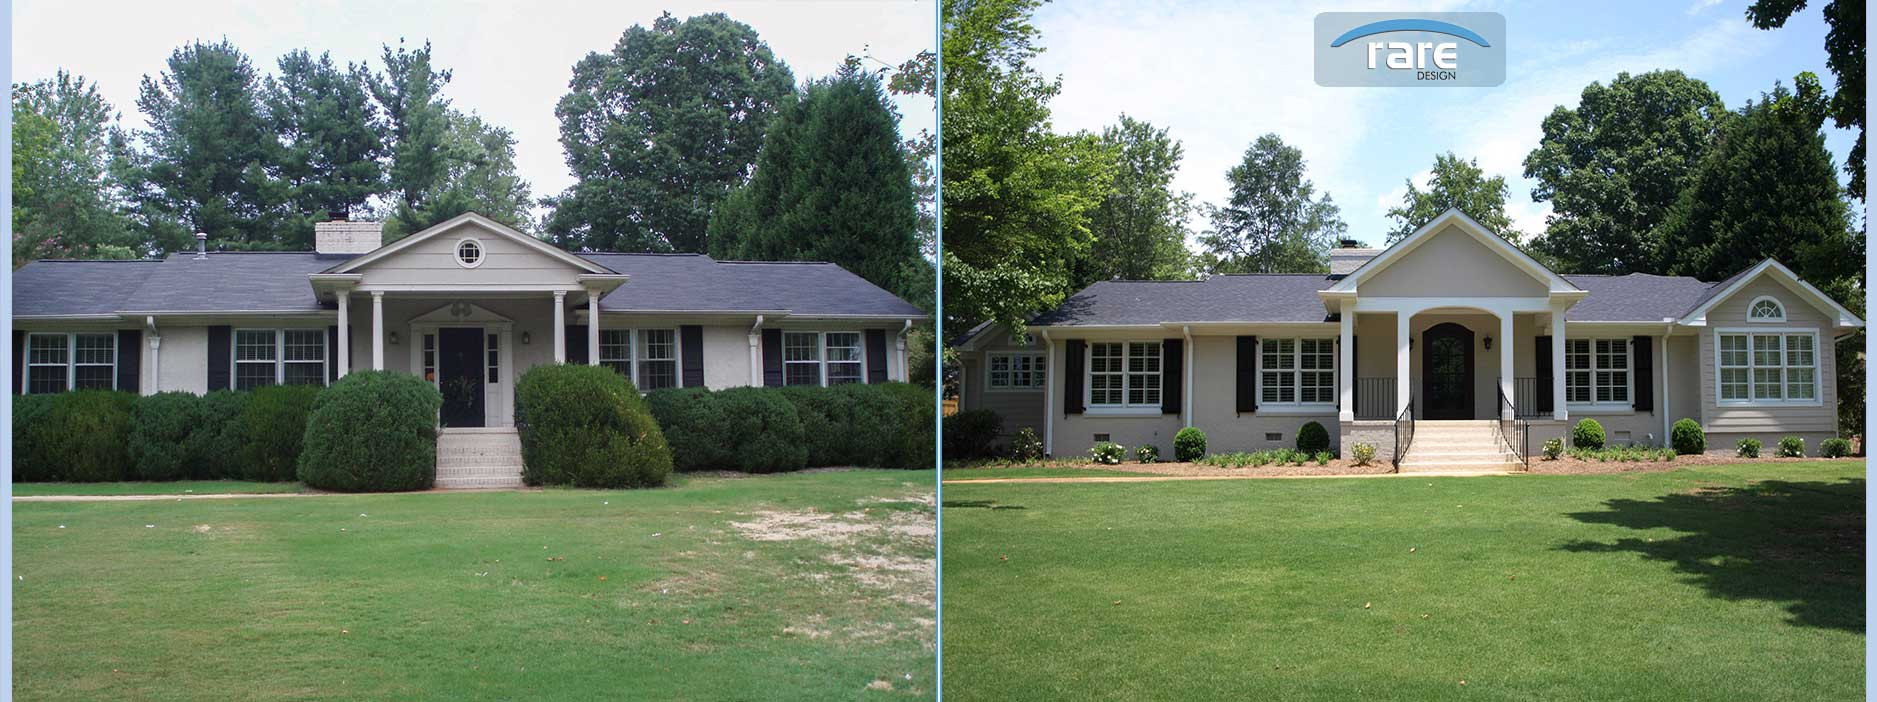 Home exterior renovation before and after best 25 exterior for External house renovation